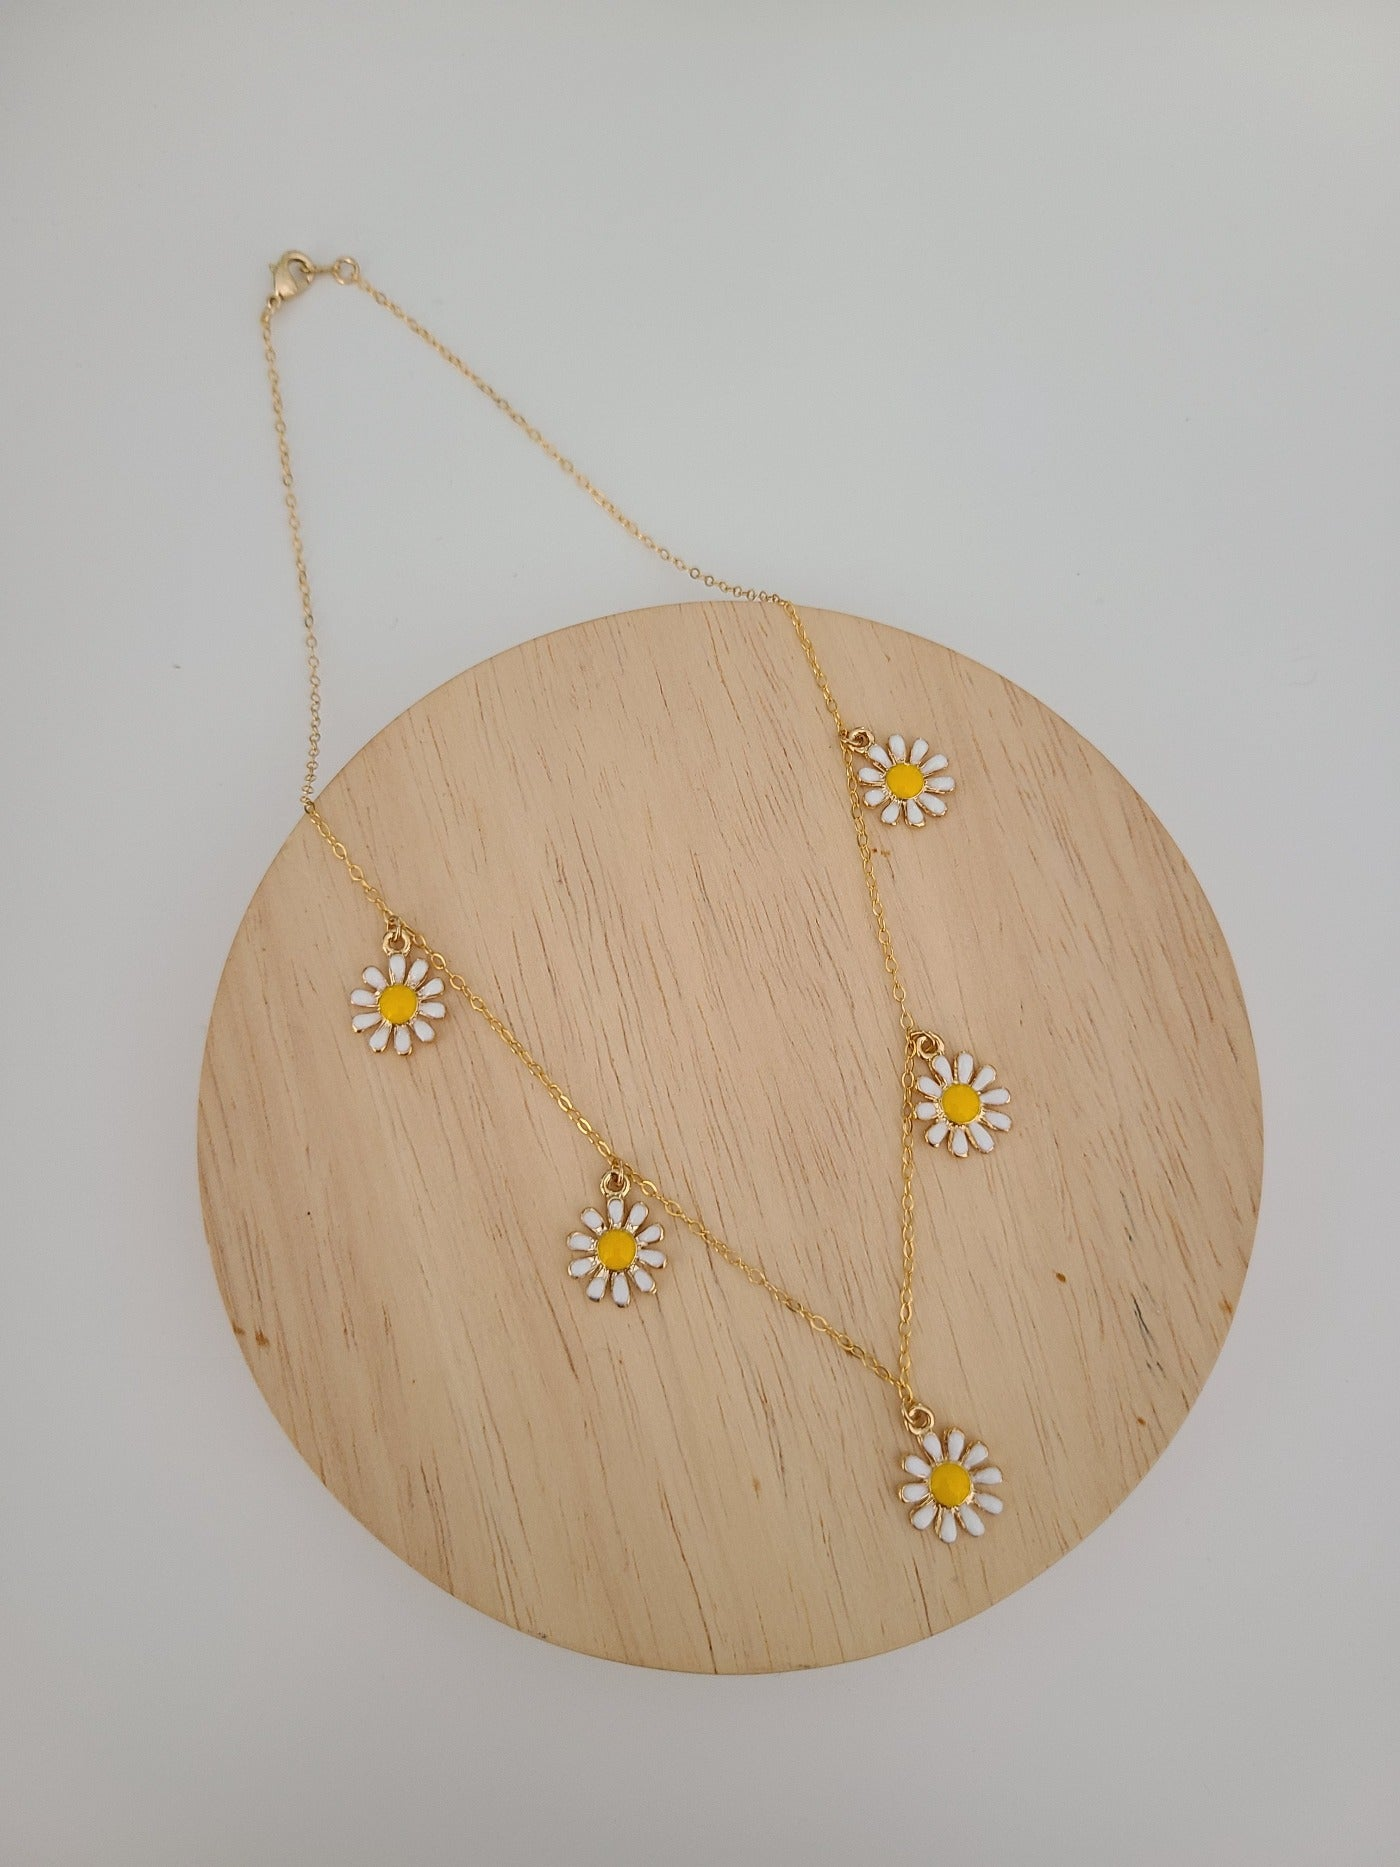 The Hanna Mae Necklace features five daisy charms on a 16 inch gold vermeil chain with a lobster clasp. Retro and cool!